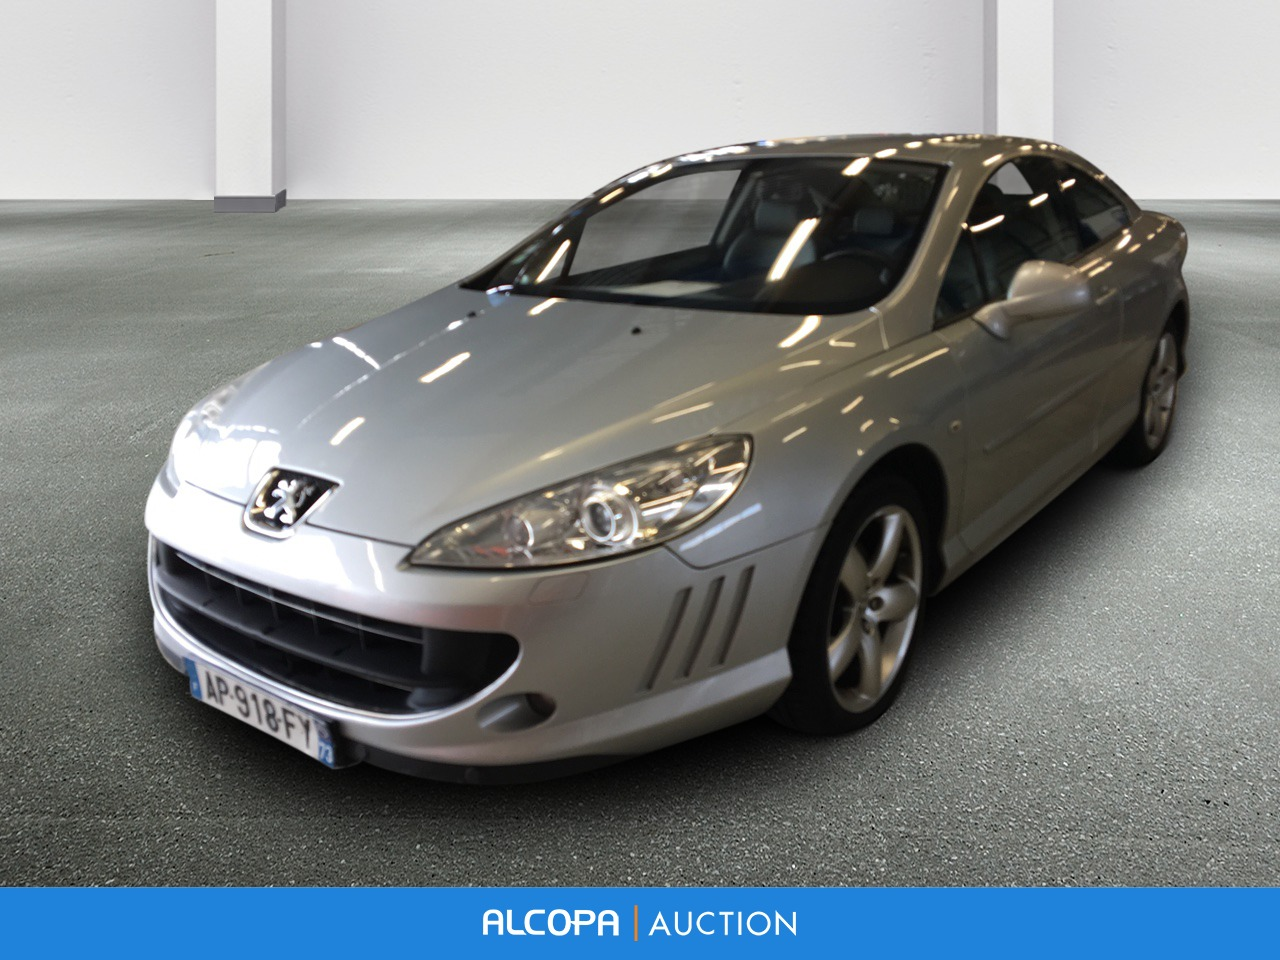 peugeot 407 coupe 407 coup 2 0 hdi 163ch fap navteq rennes alcopa auction. Black Bedroom Furniture Sets. Home Design Ideas